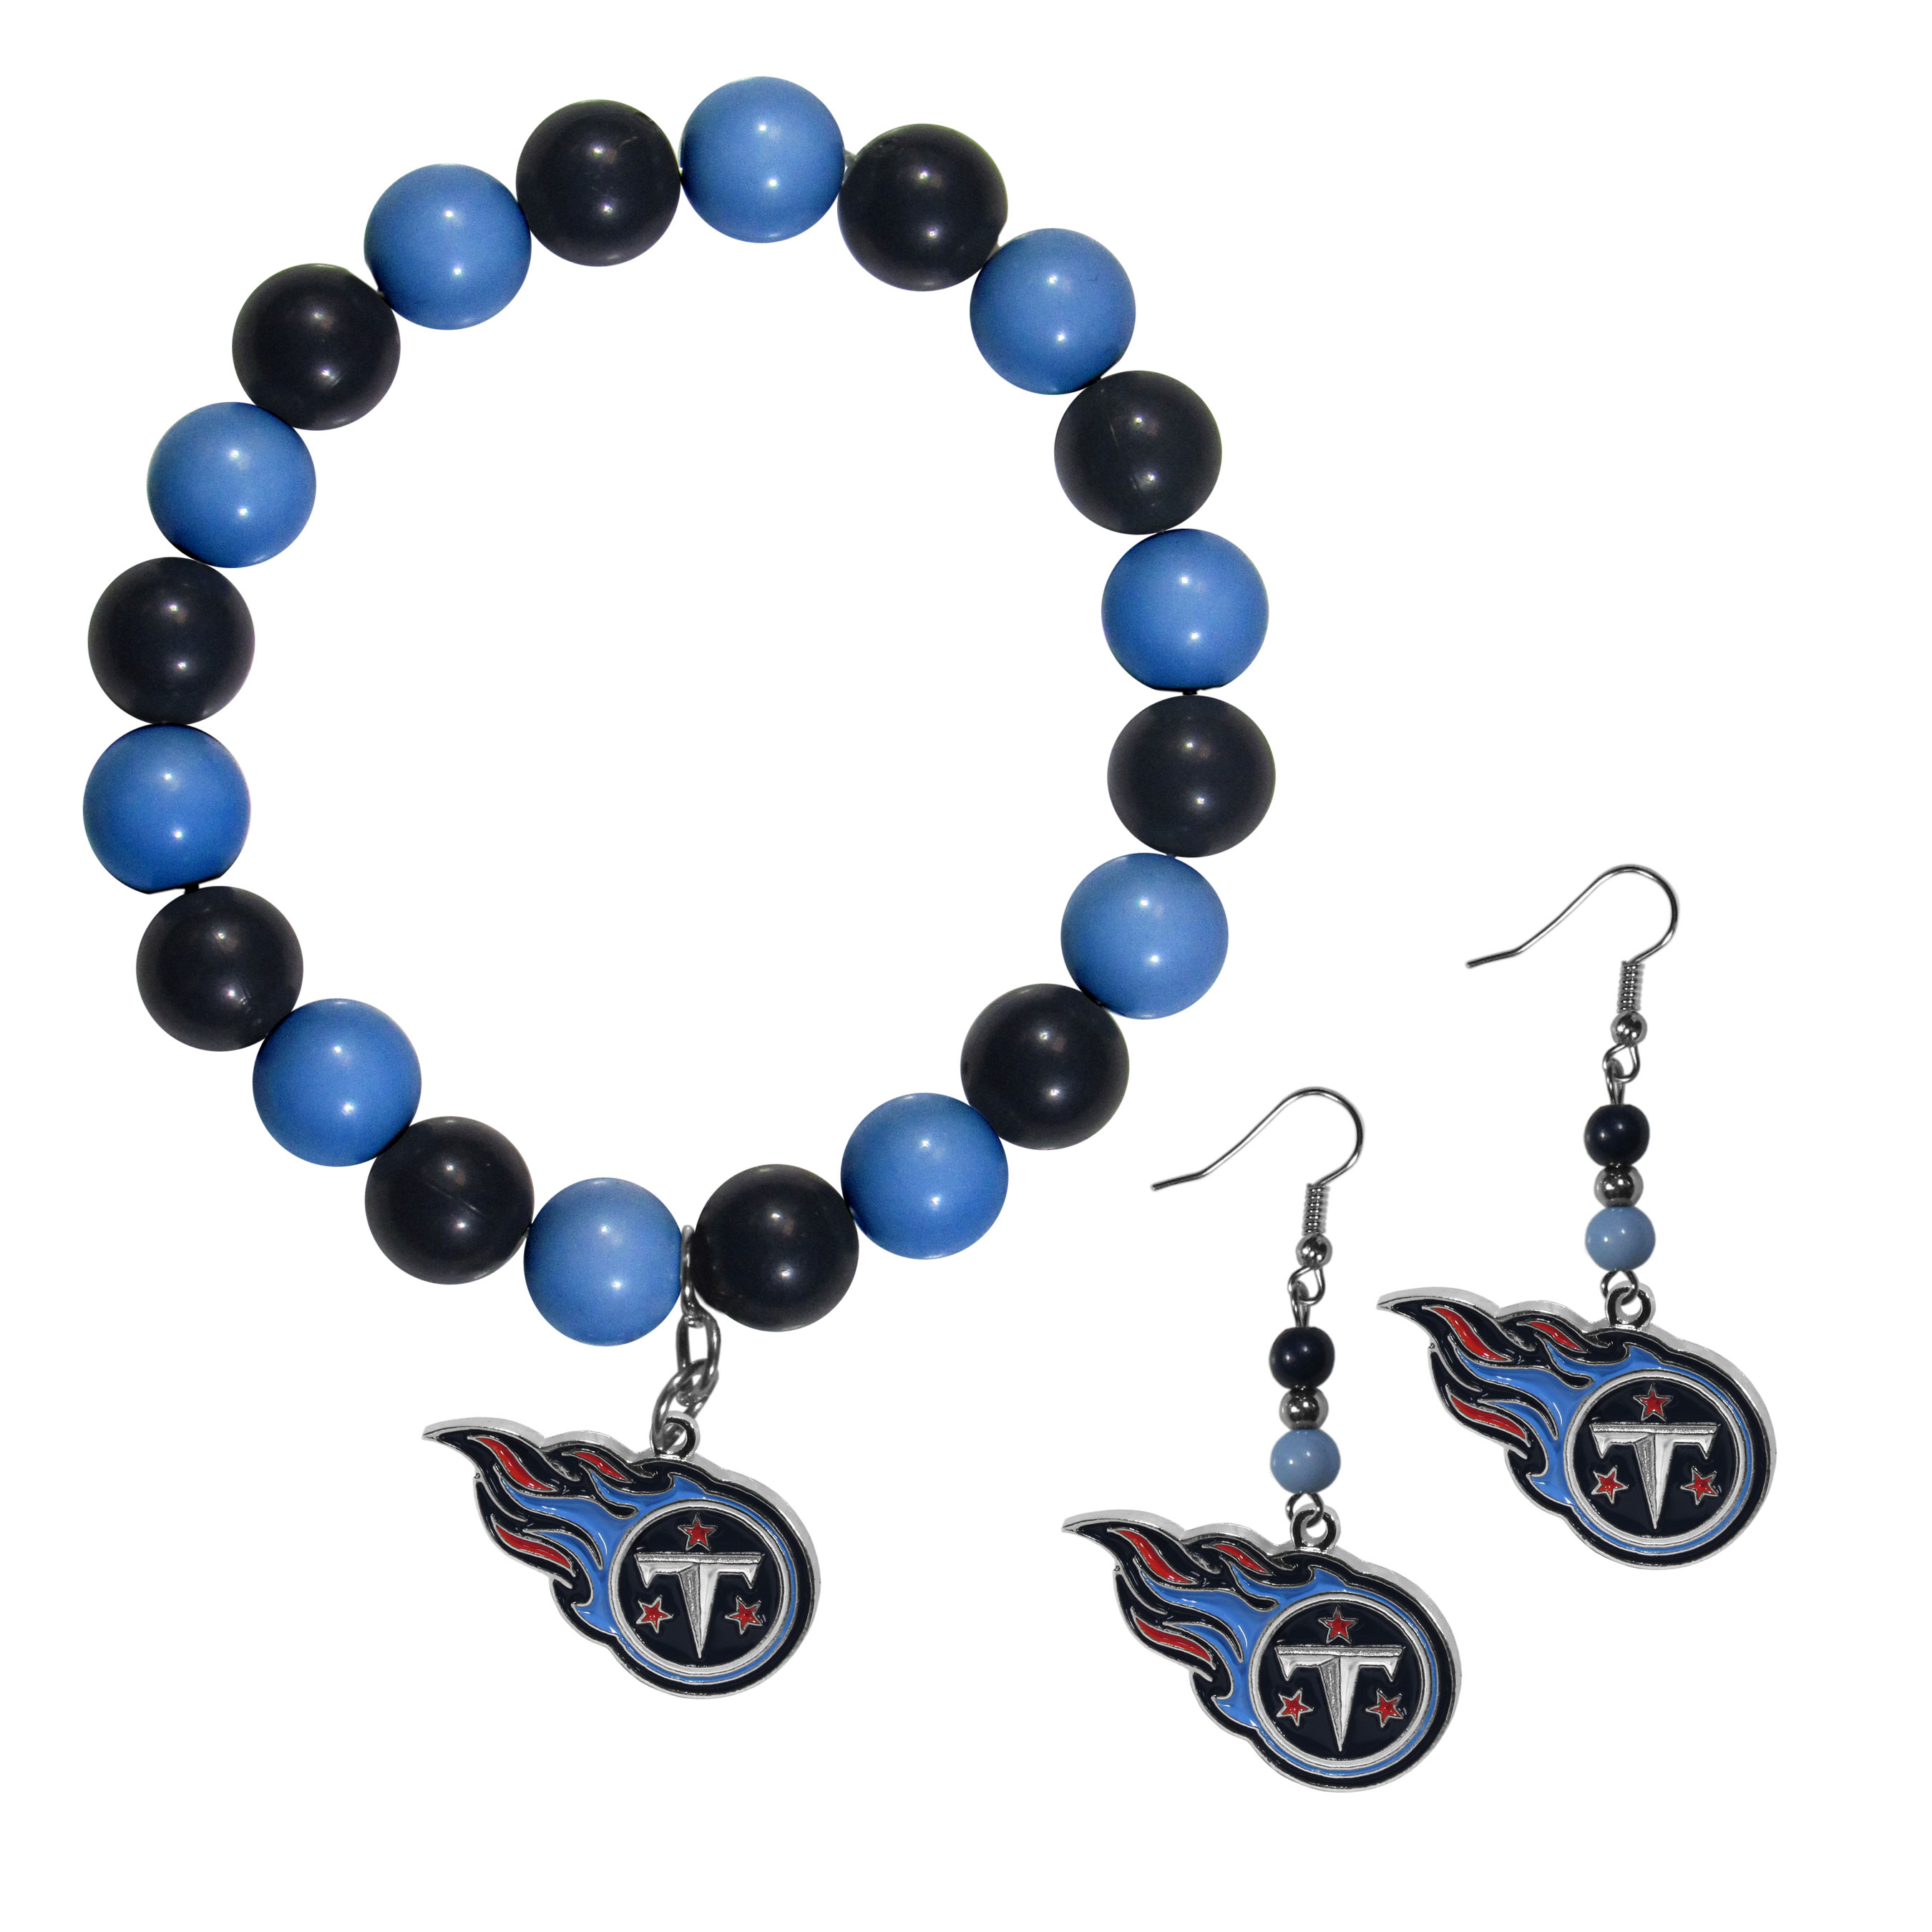 Tennessee Titans Fan Bead Earrings and Bracelet Set - This fun and colorful Tennessee Titans fan bead jewelry set is fun and casual with eye-catching beads in bright team colors. The fashionable dangle earrings feature a team colored beads that drop down to a carved and enameled charm. The stretch bracelet has larger matching beads that make a striking statement and have a matching team charm. These sassy yet sporty jewelry pieces make a perfect gift for any female fan. Spice up your game-day outfit with these fun colorful earrings and bracelet that are also cute enough for any day.